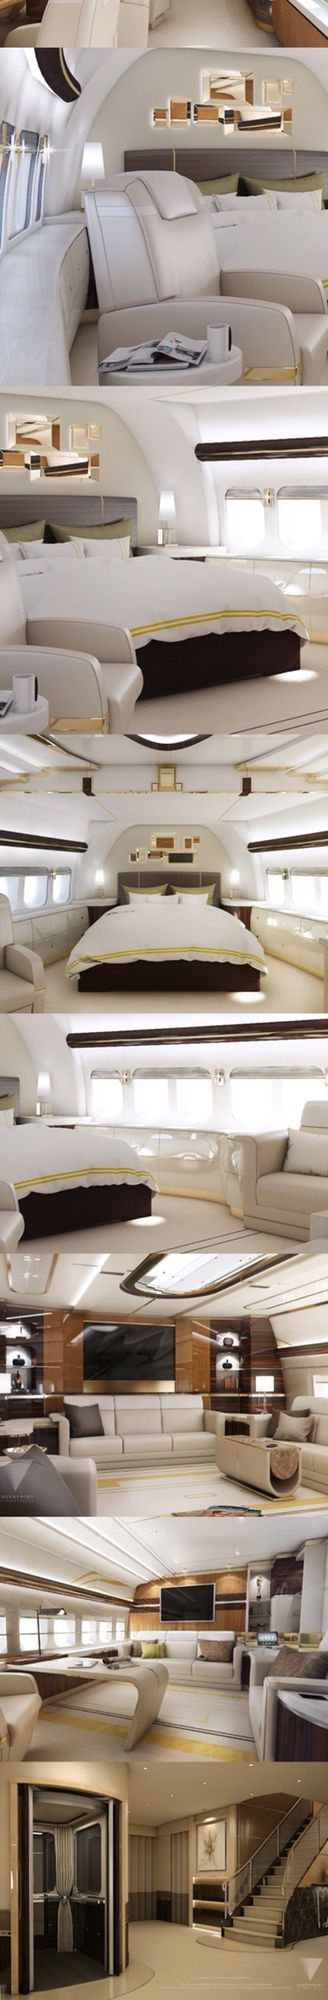 Best 25 Jets Ideas On Pinterest Aircraft Planes And